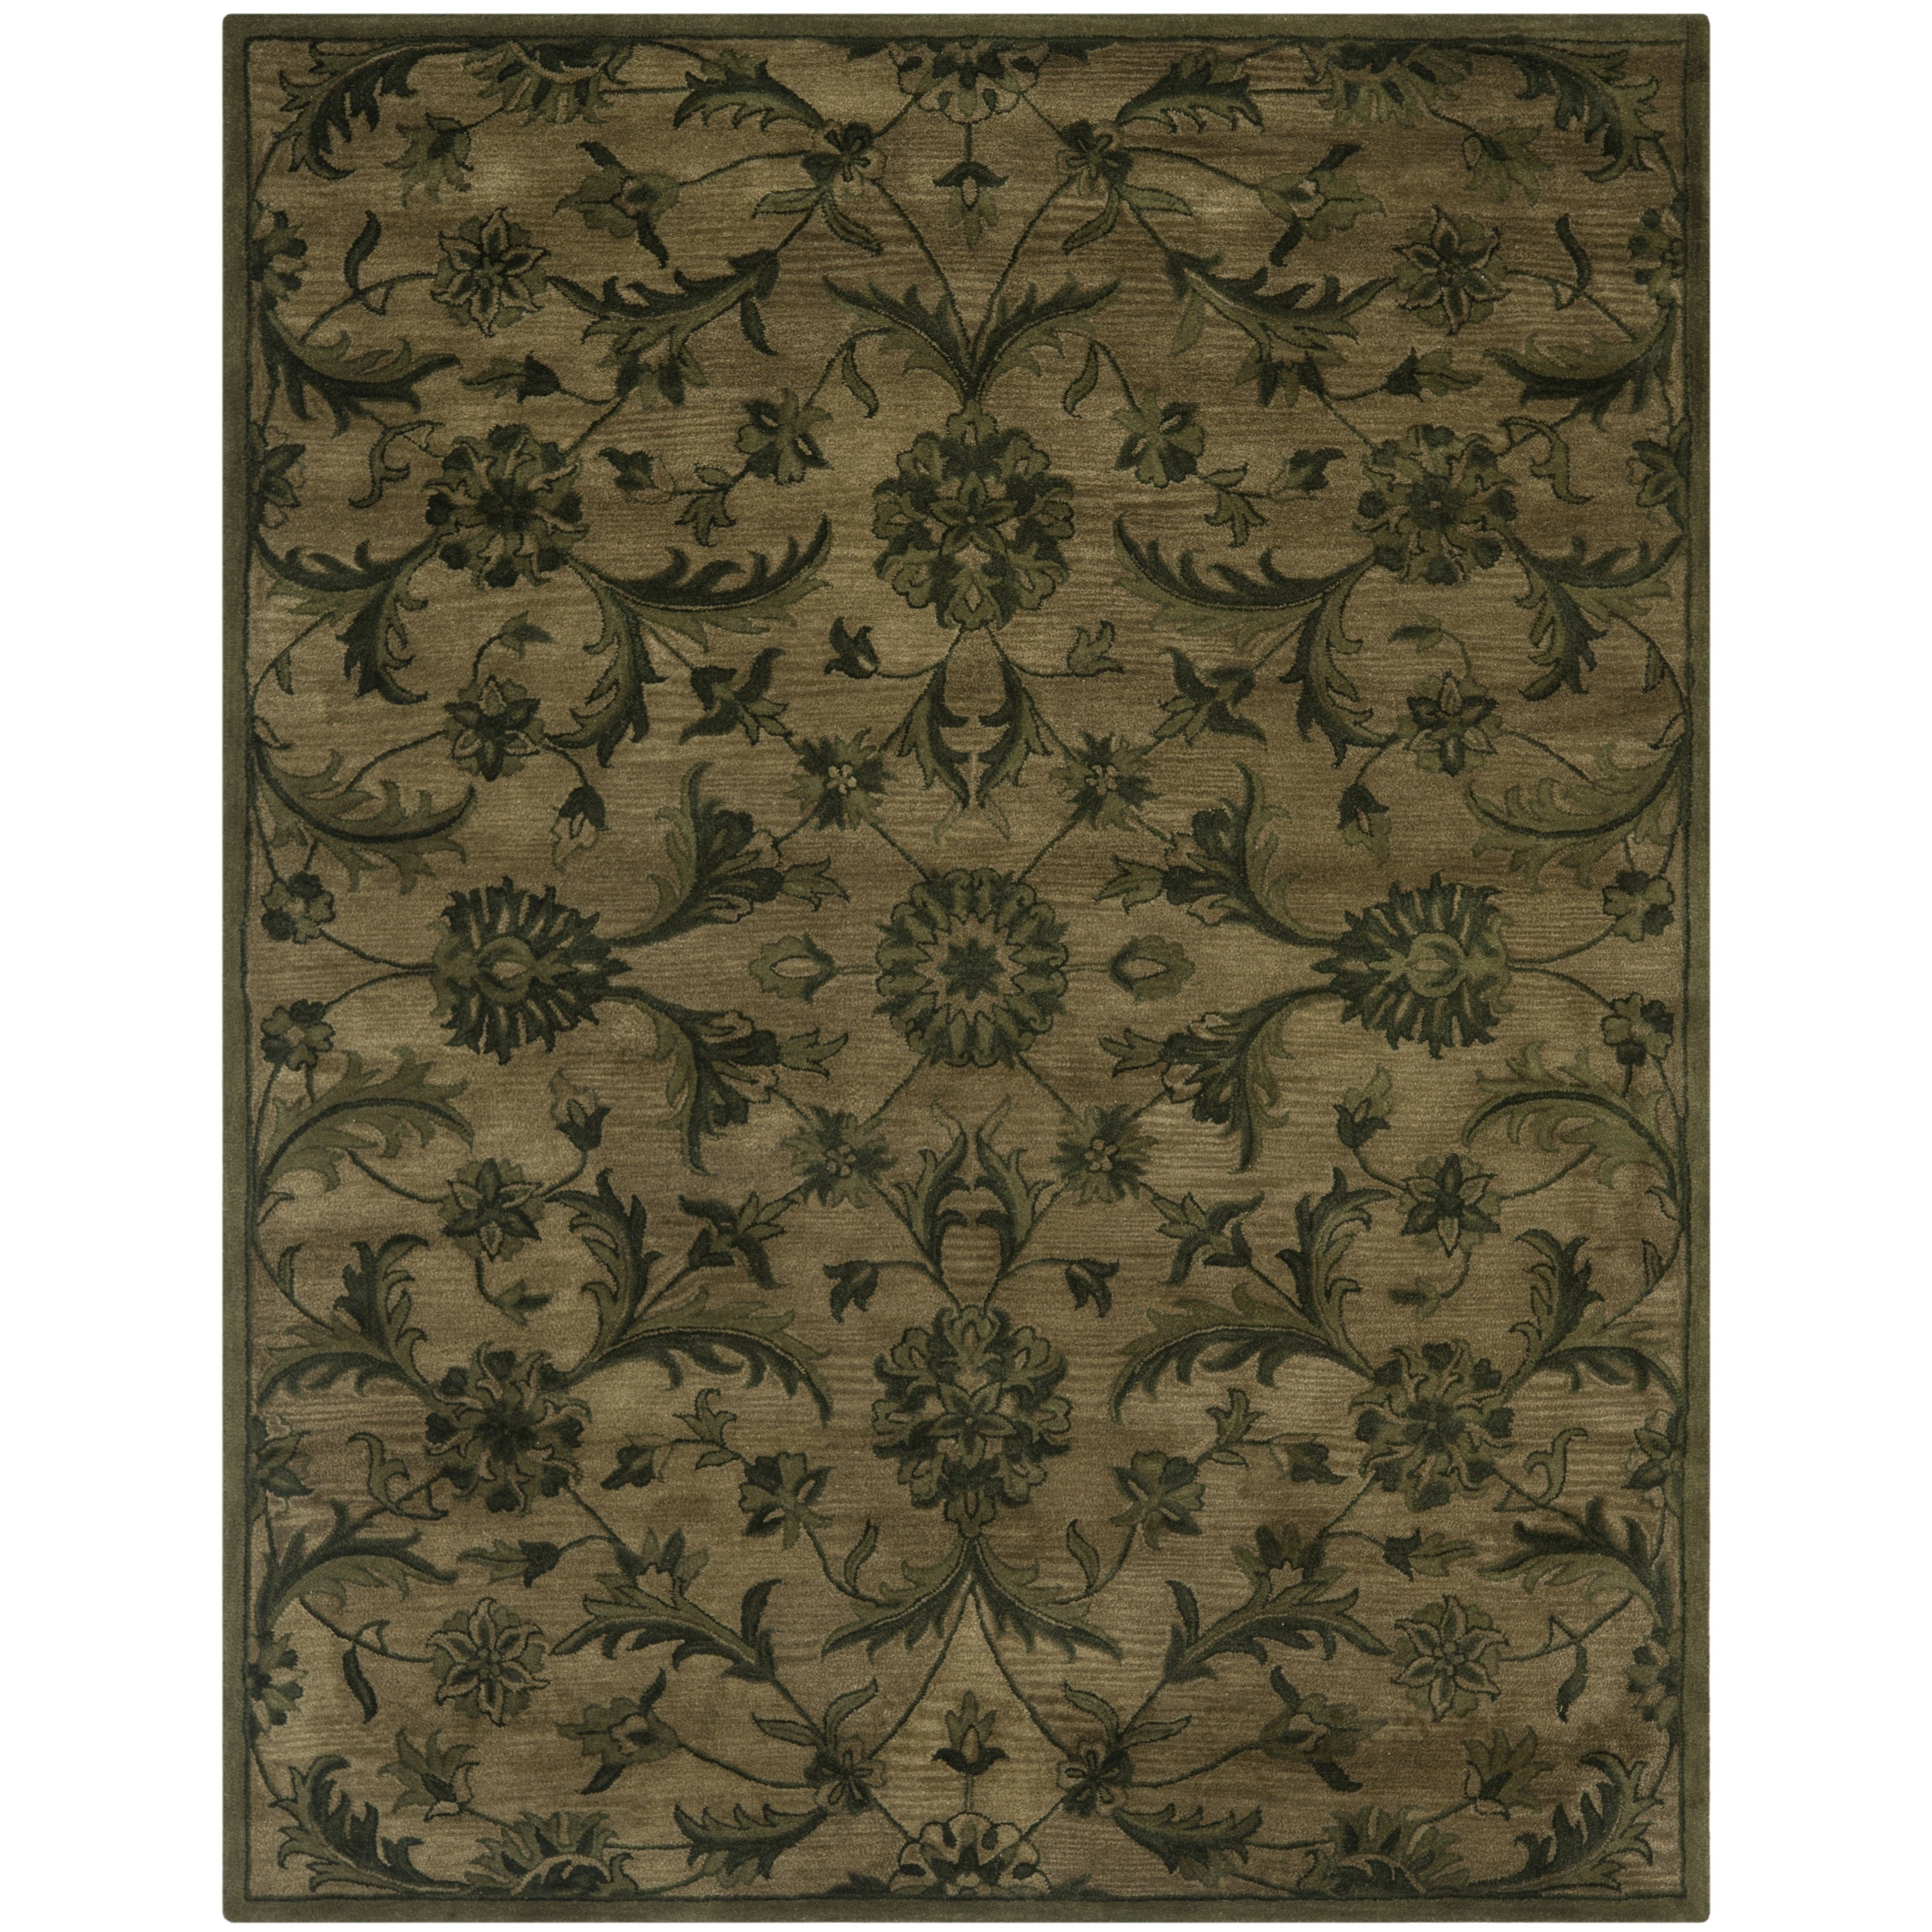 Green Wool Rugs Green Cotton 80 Area Rugs Overstock Shopping